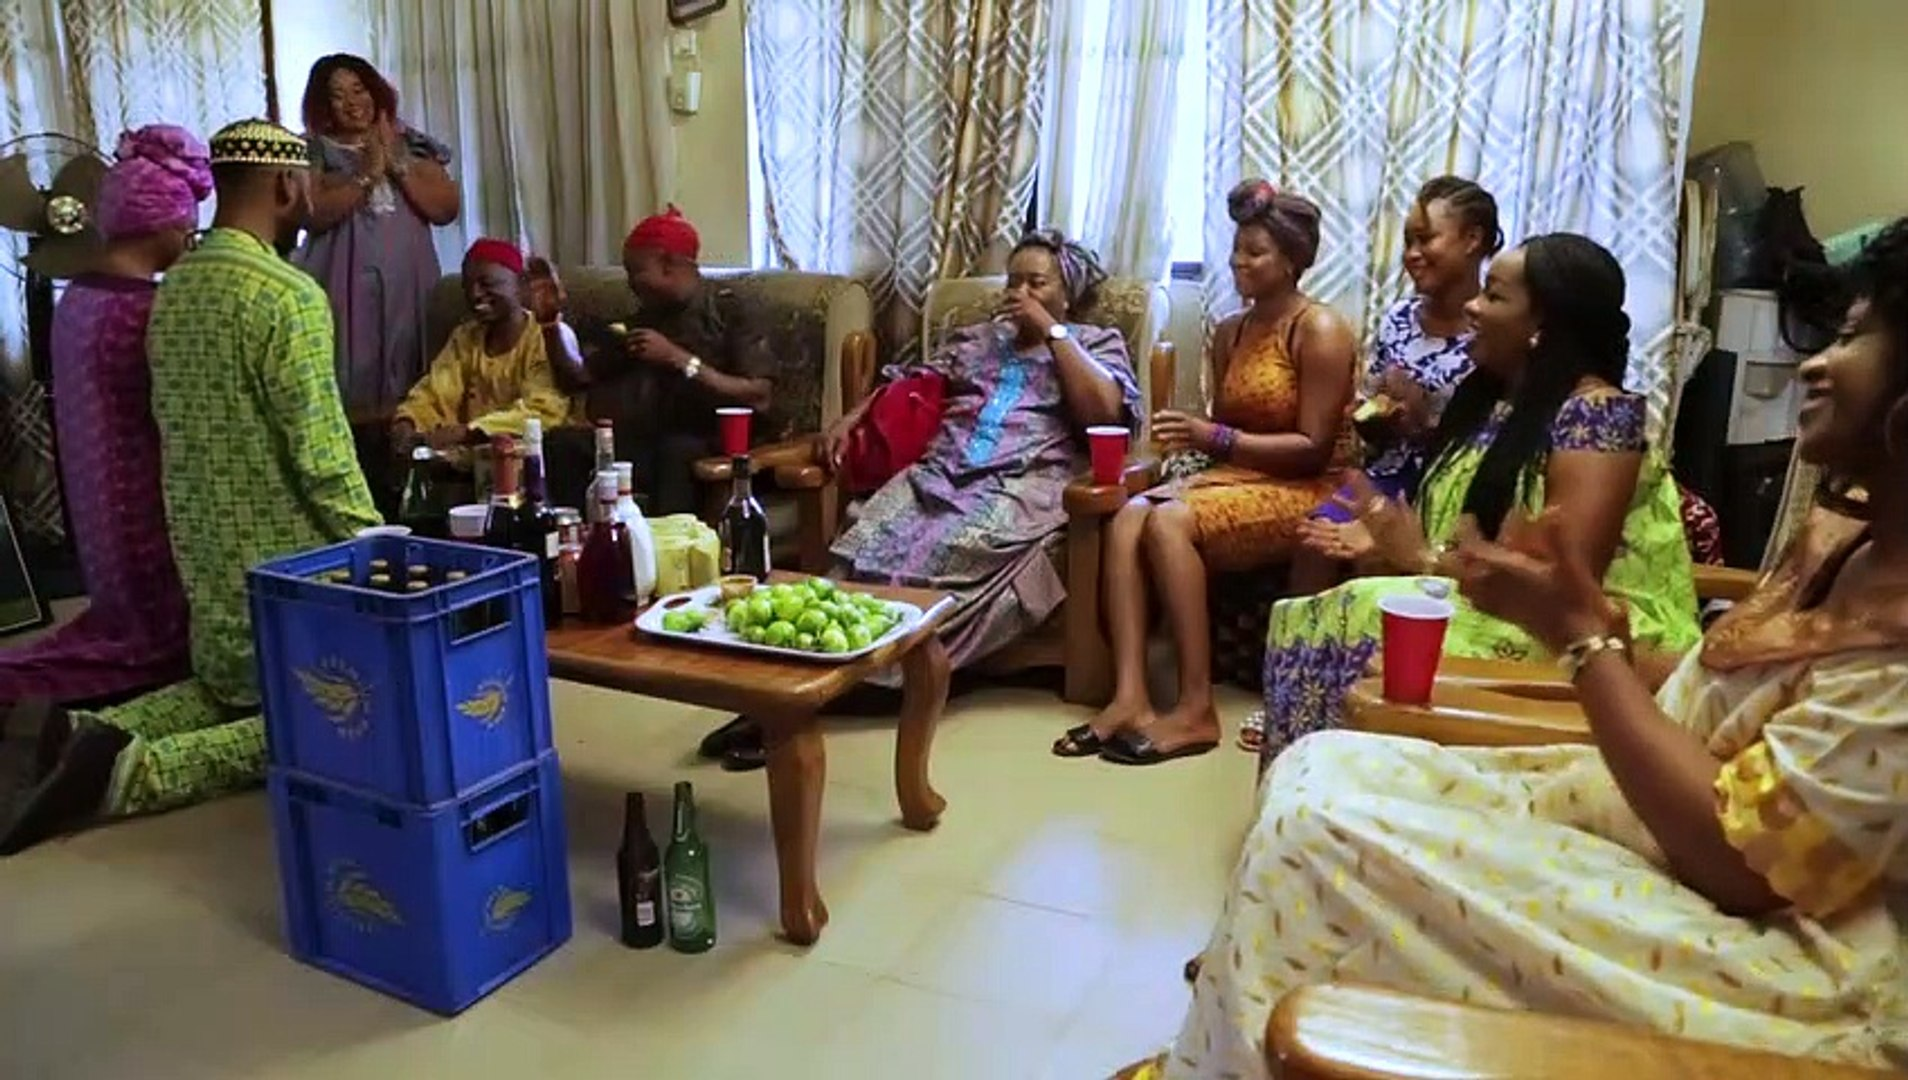 NO MATTER HOW I TRIED I CAN NEVER LET GO OF YOUR SEXY BODY - 2019 NIGERIAN MOVIE